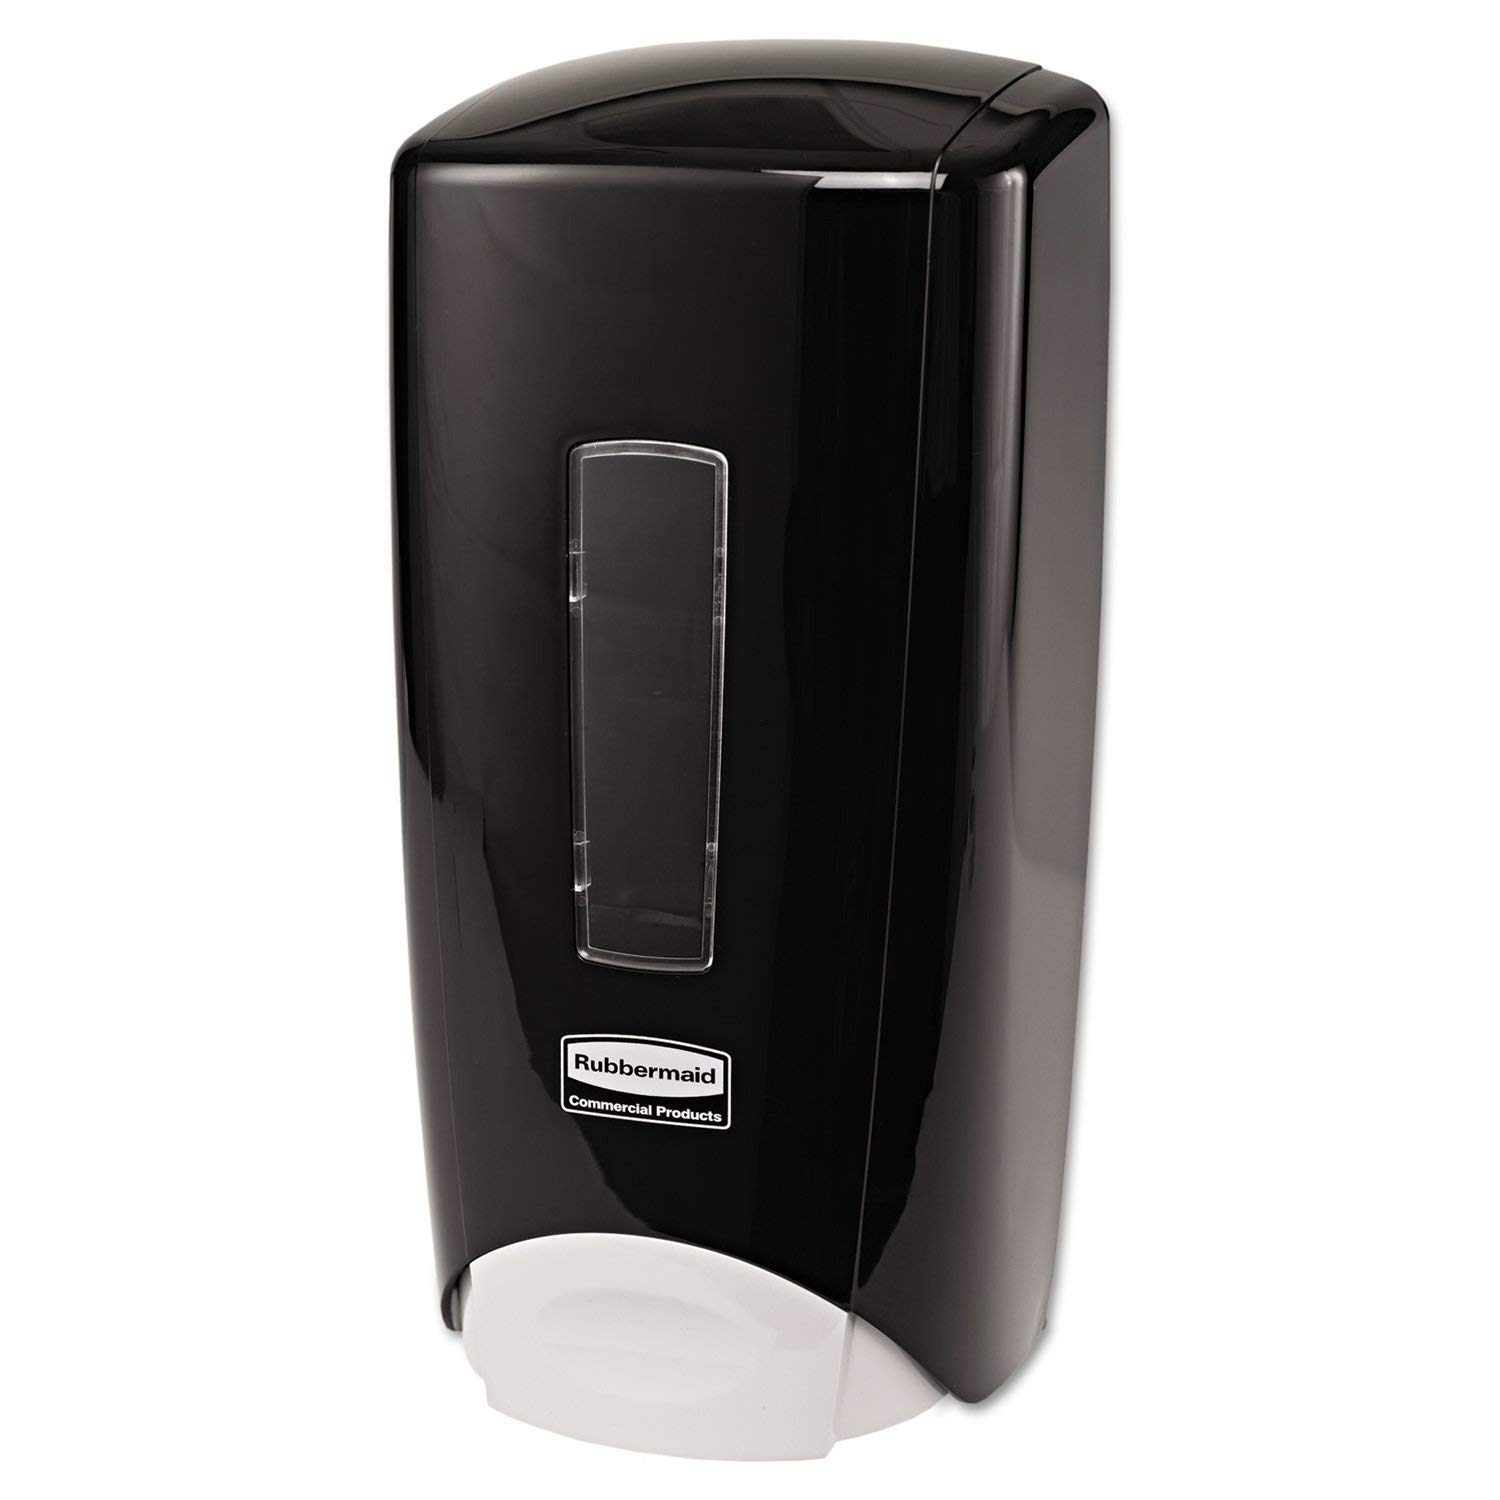 FG750127 Rubbermaid Commercial Products 290281 5.25-Inch Length x 5.18-Inch Width x 10.86-Inch Height Black//Black Pearl Rubbermaid Commercial Wall Mount Auto Foam Dispenser